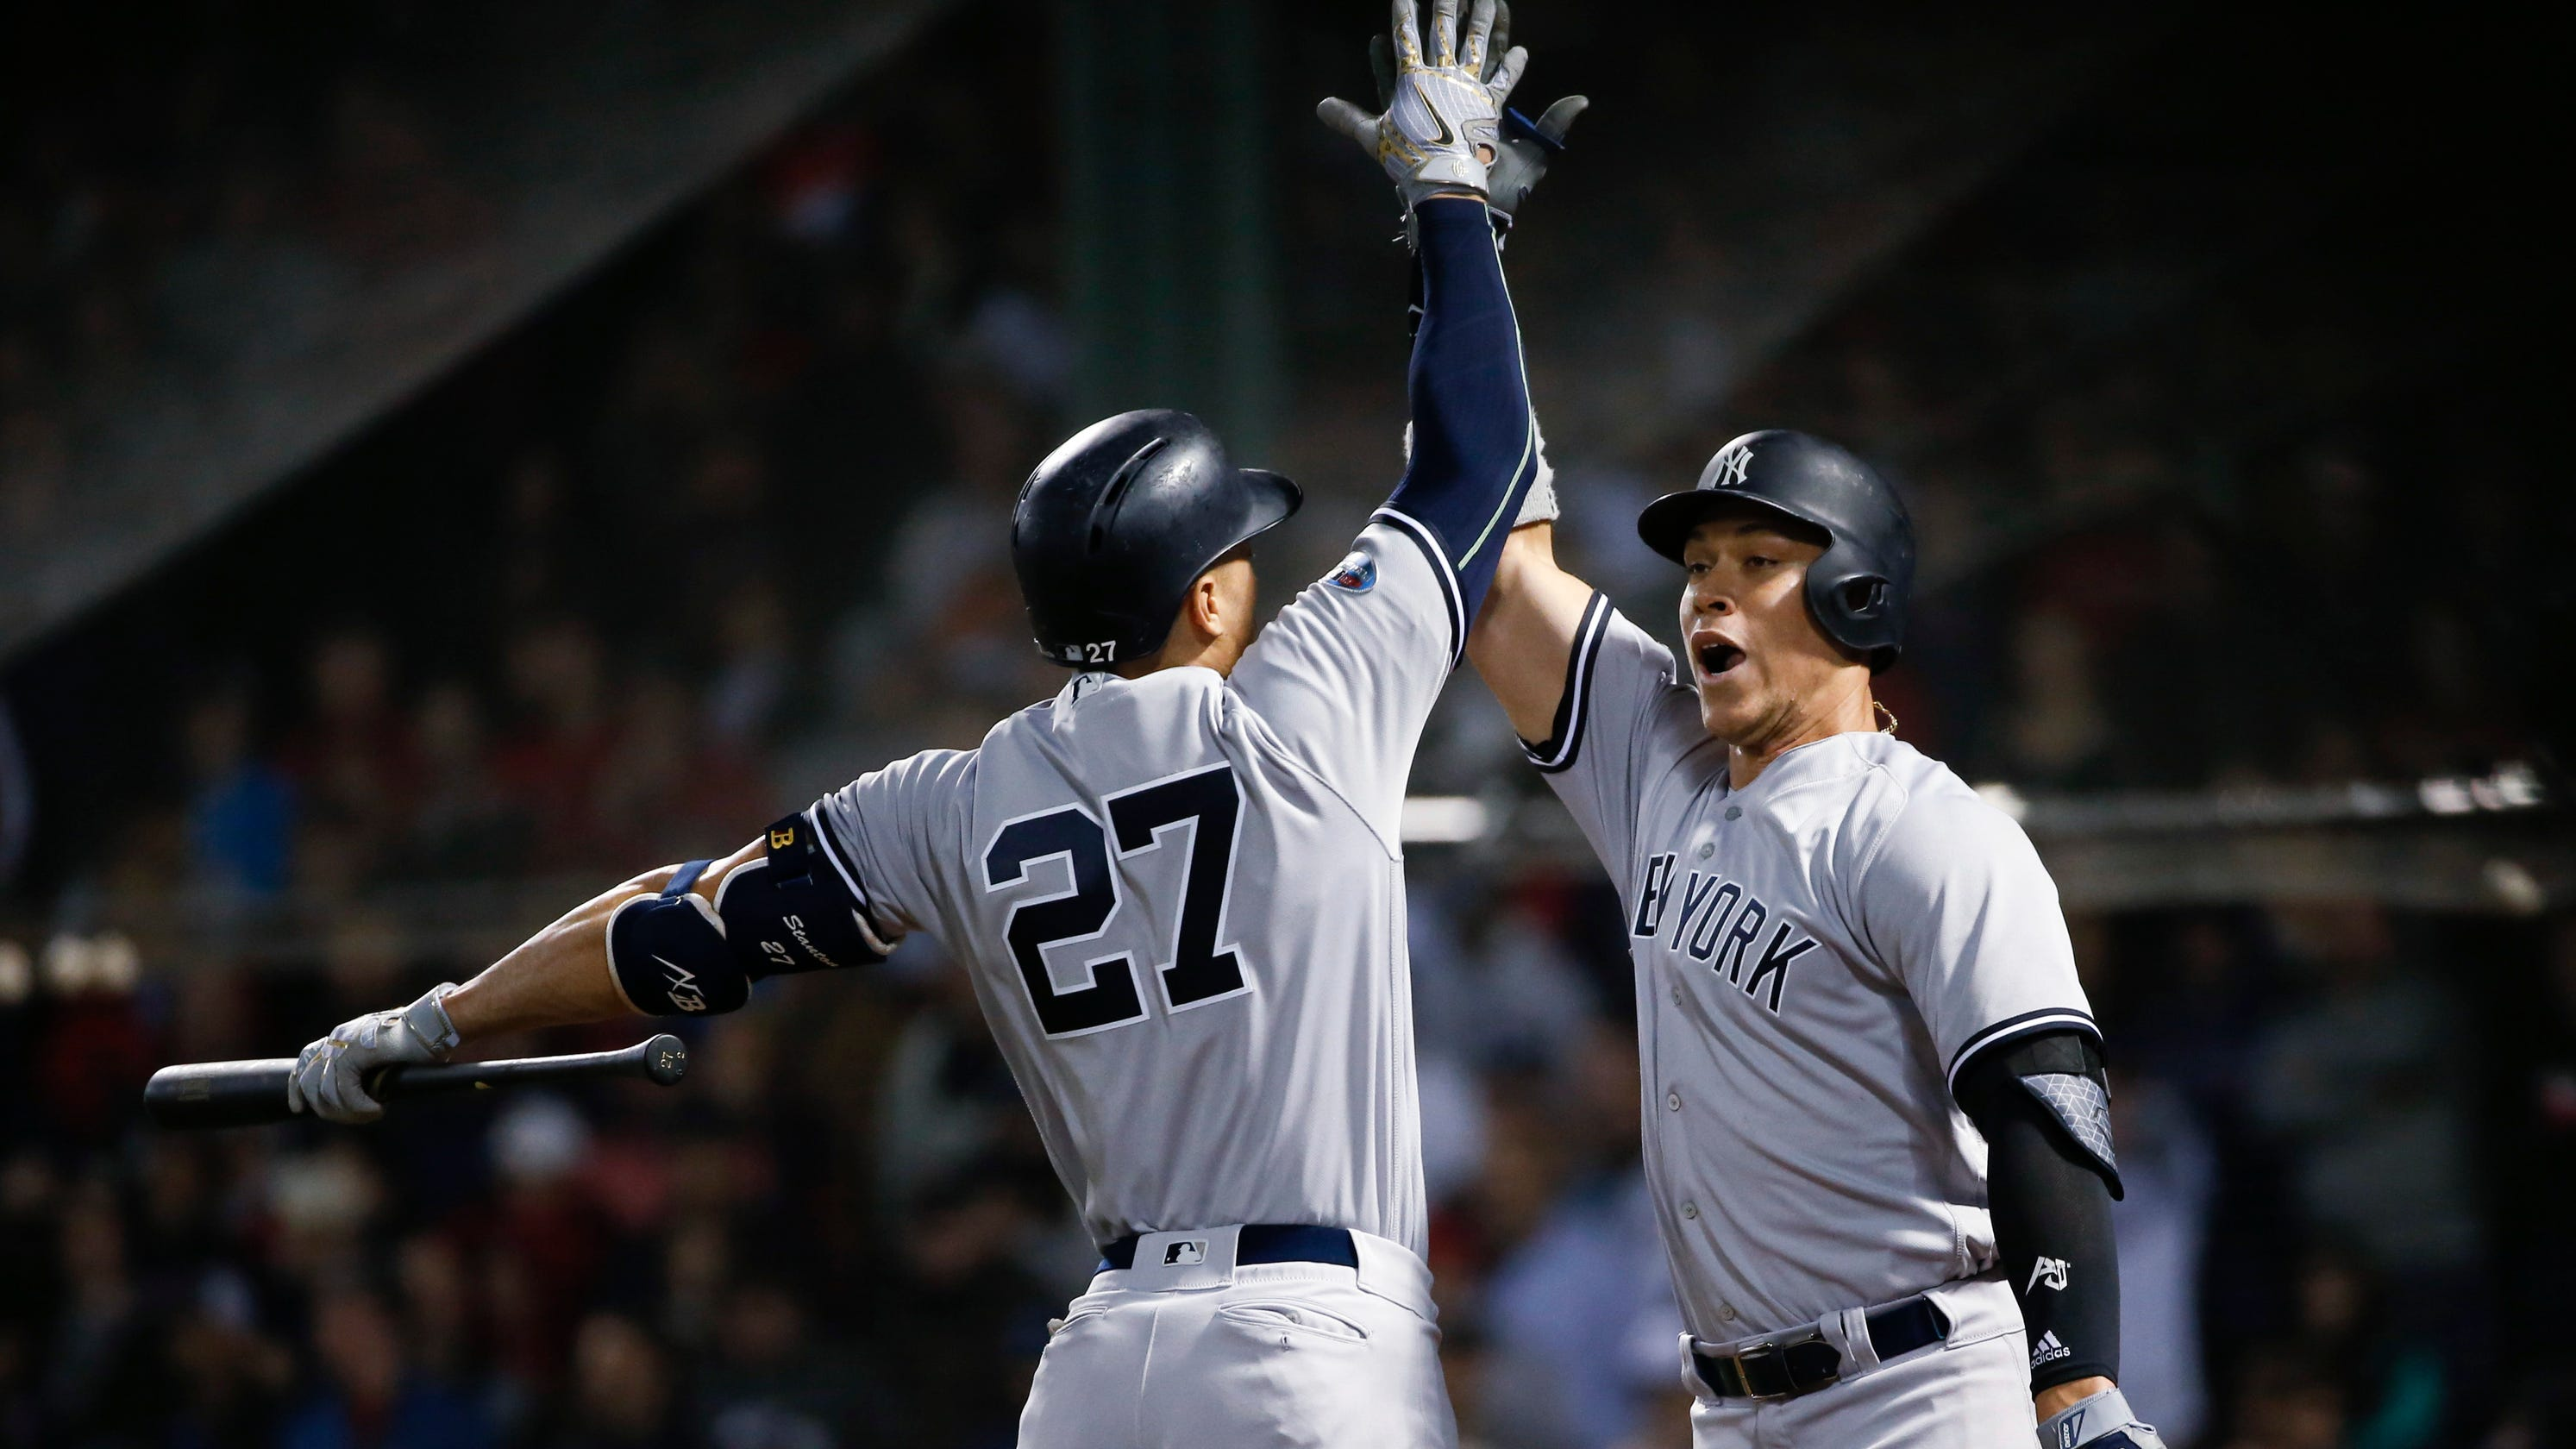 New York Yankees, NY Mets could end up on exclusive ...Yankees